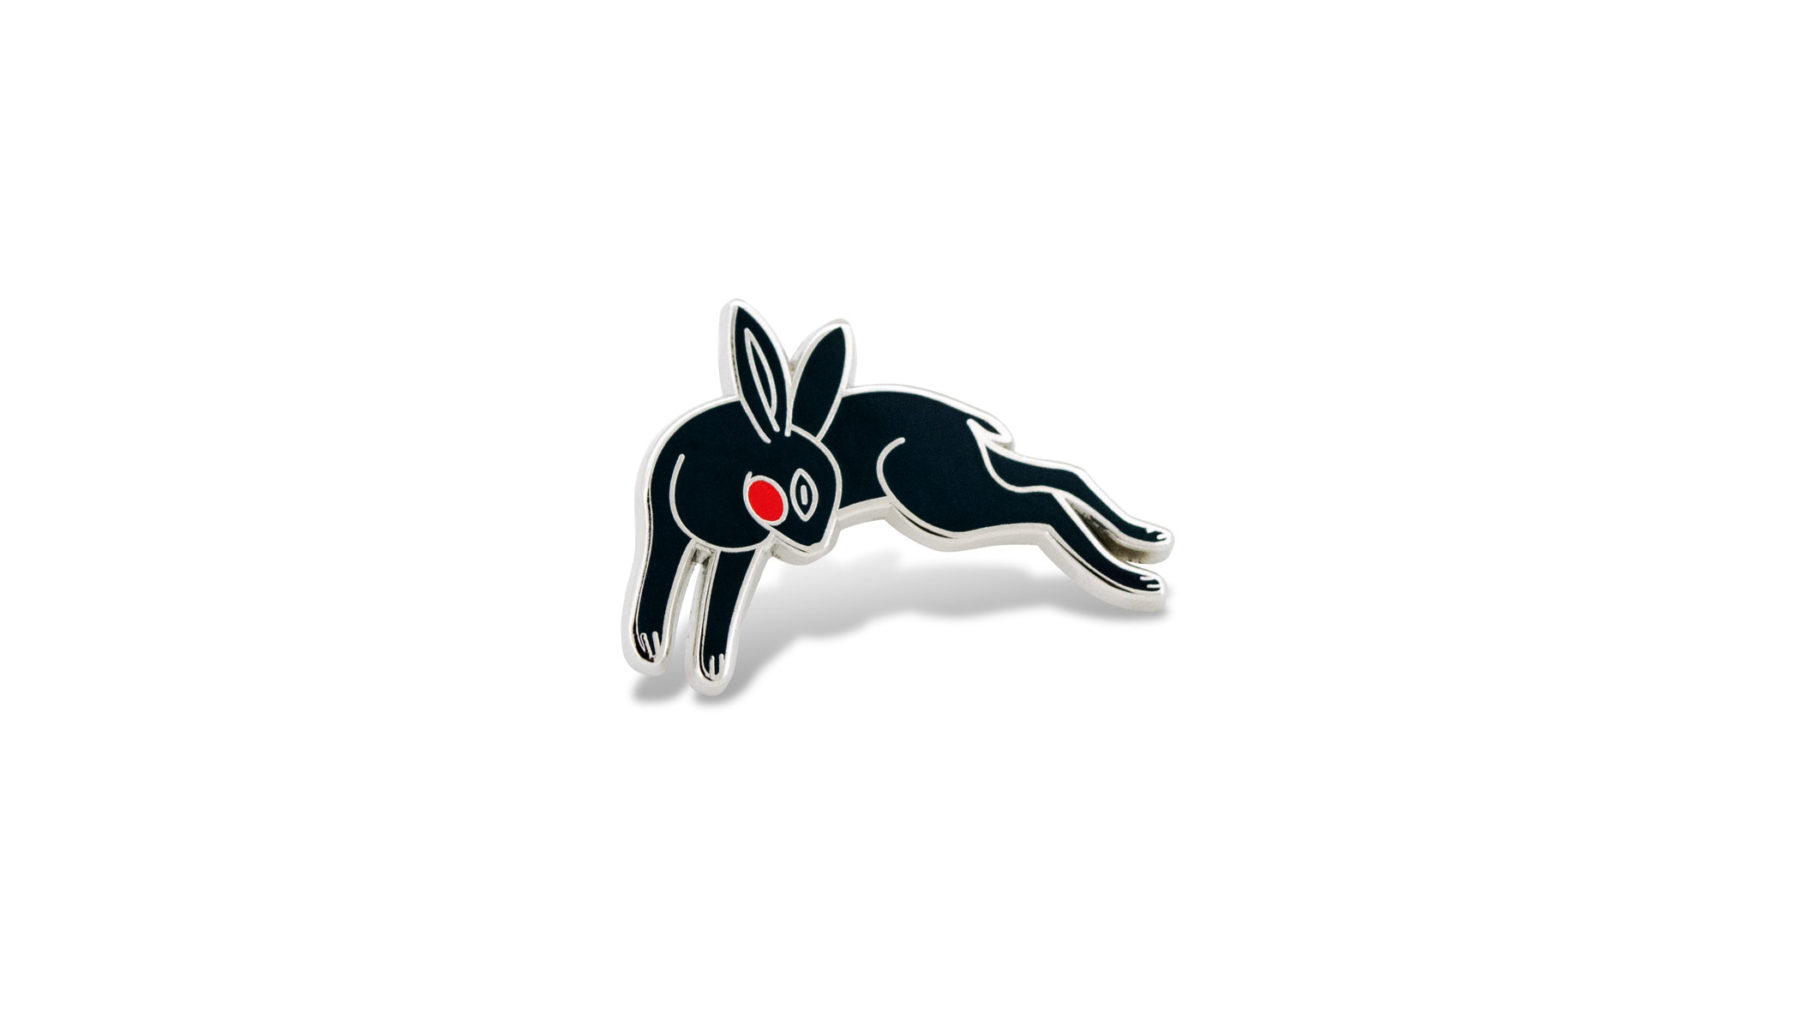 Black rabbit pins.